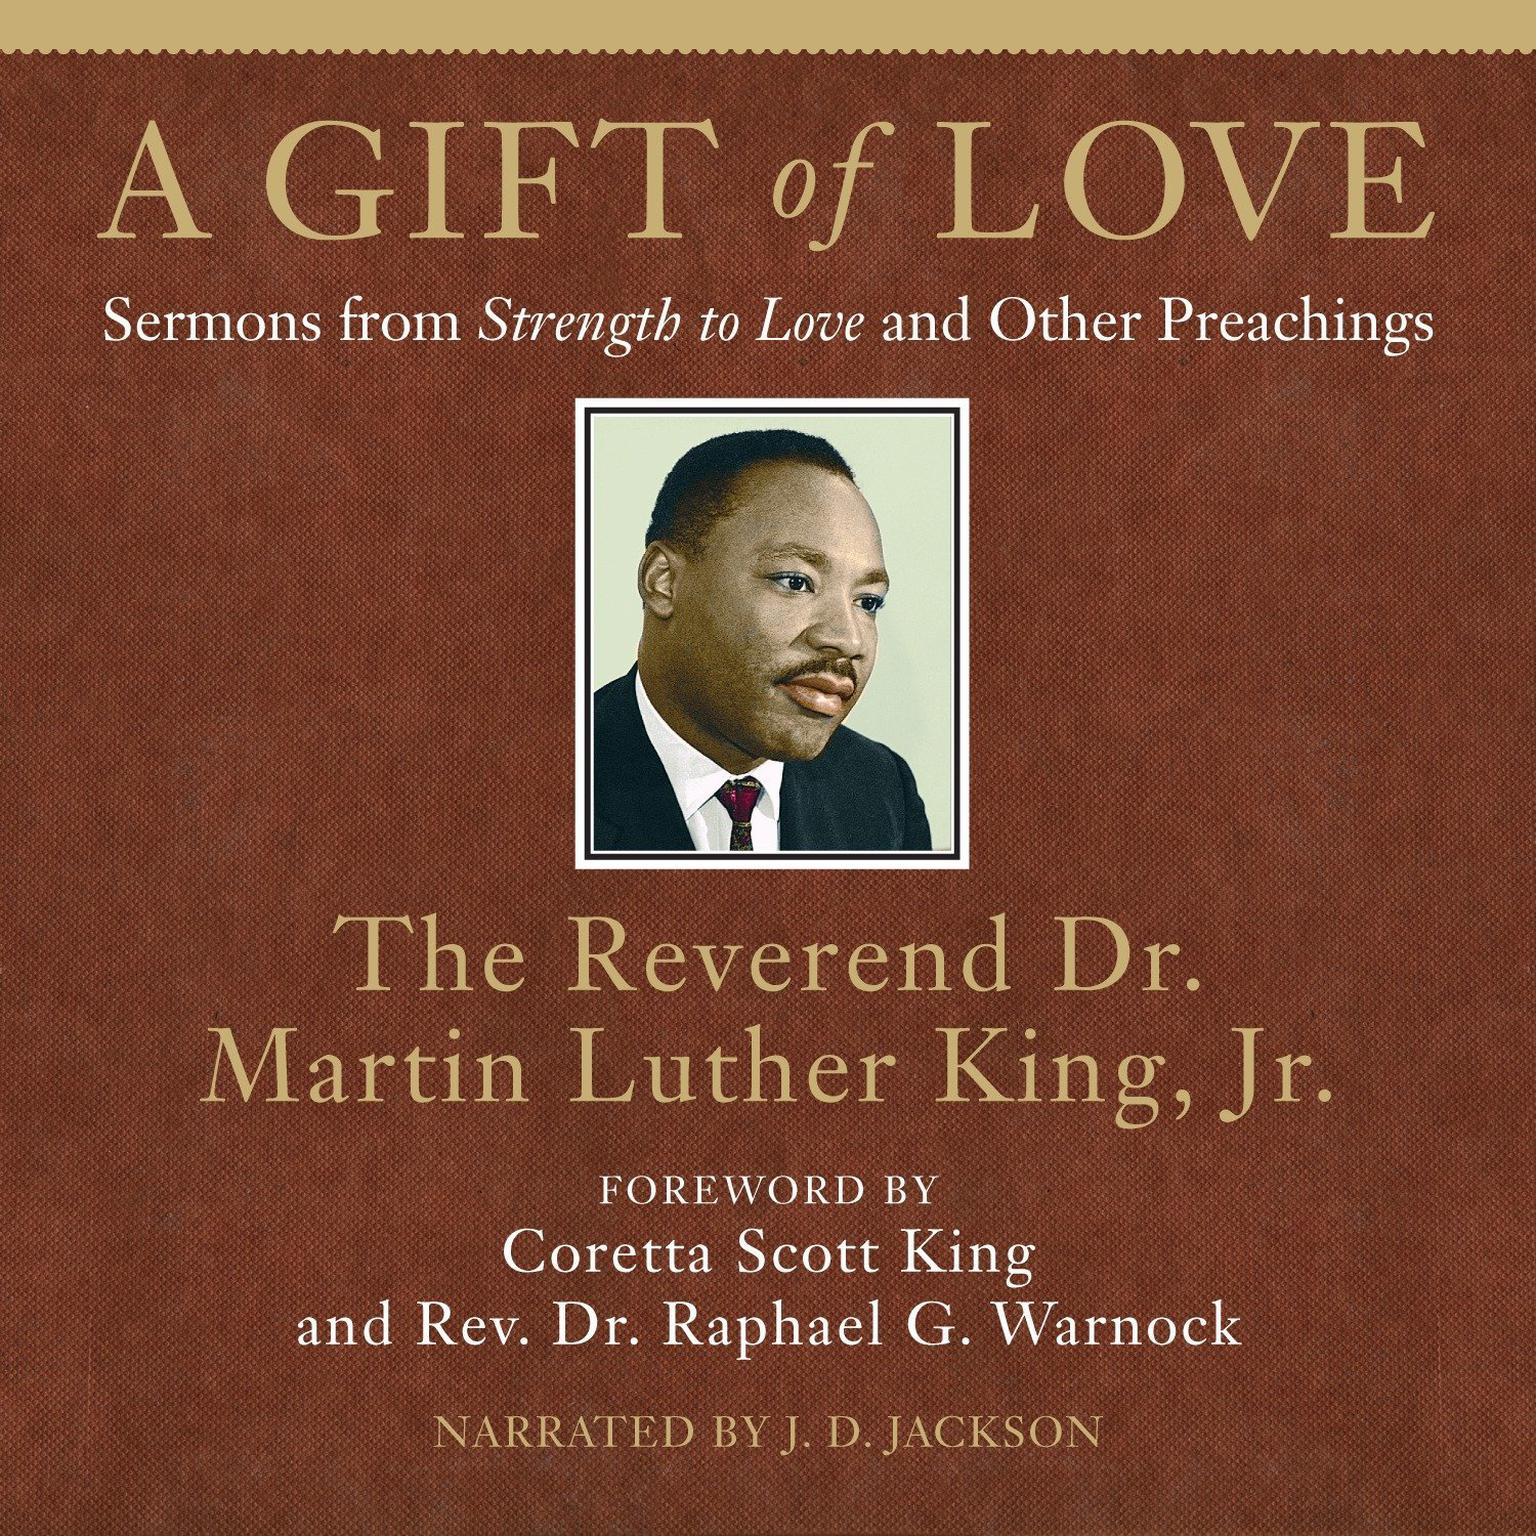 A Gift of Love: Sermons from Strength to Love and Other Preachings Audiobook, by Martin Luther King